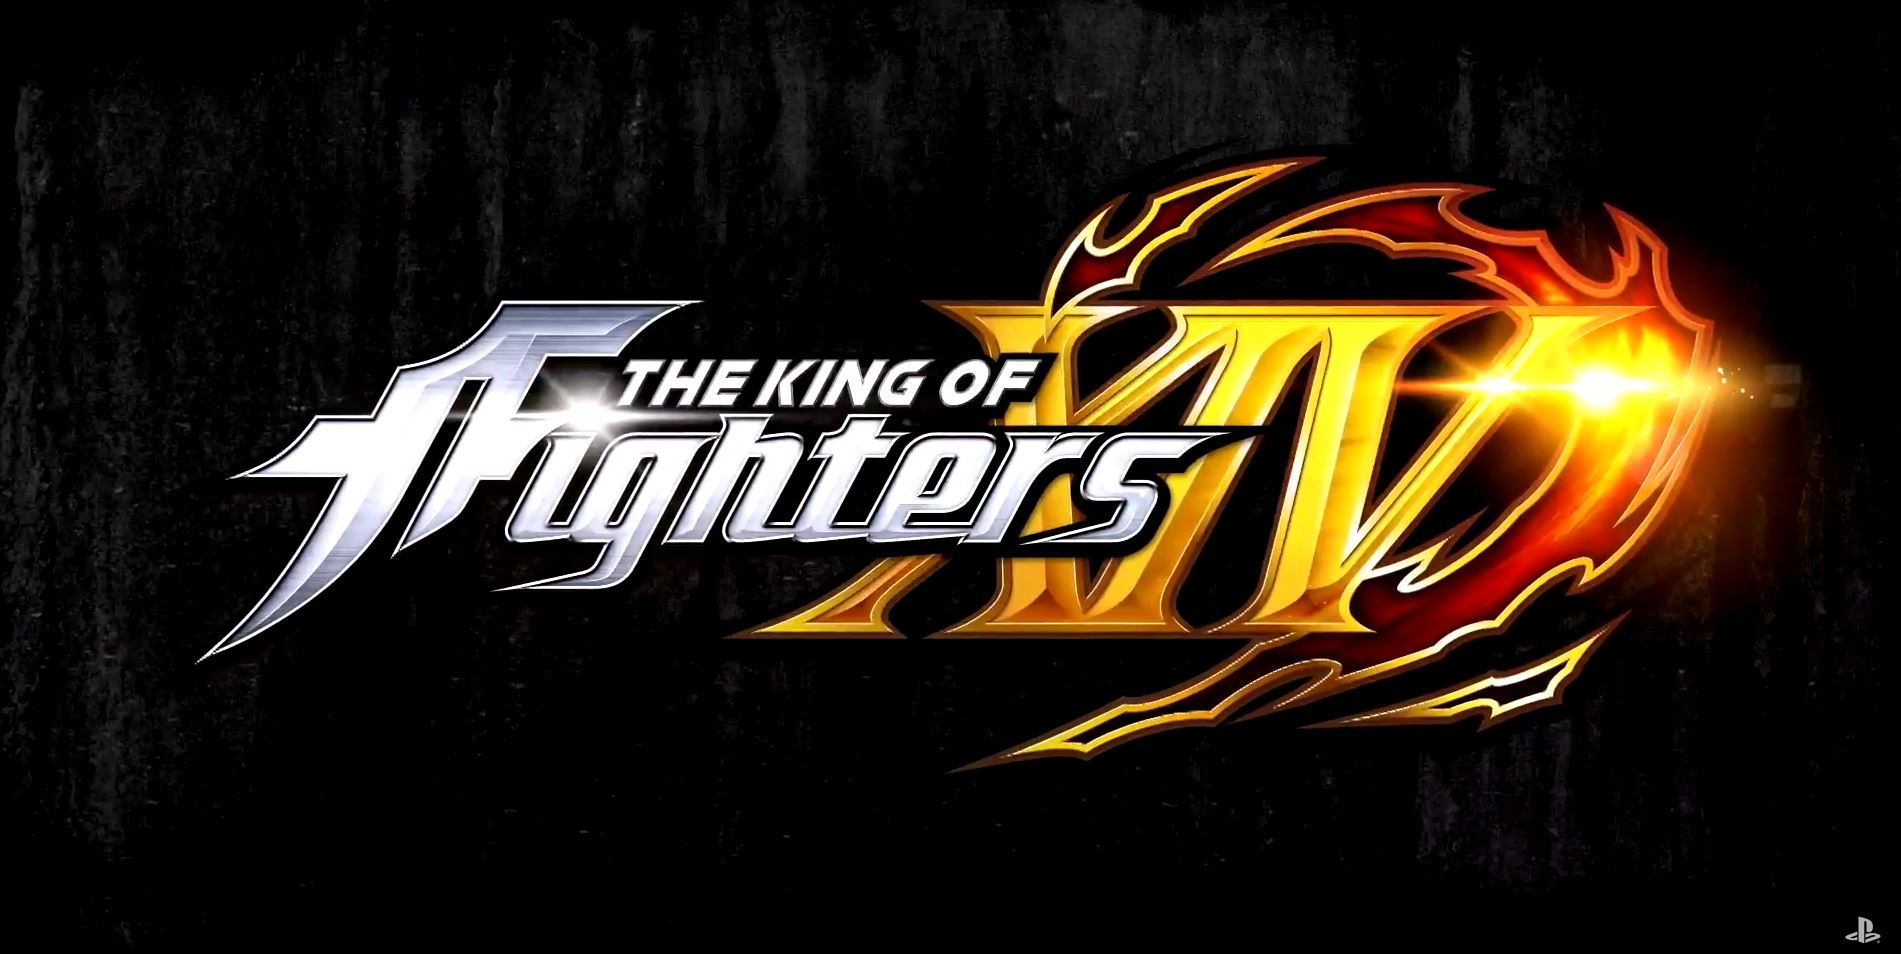 kingfighters14